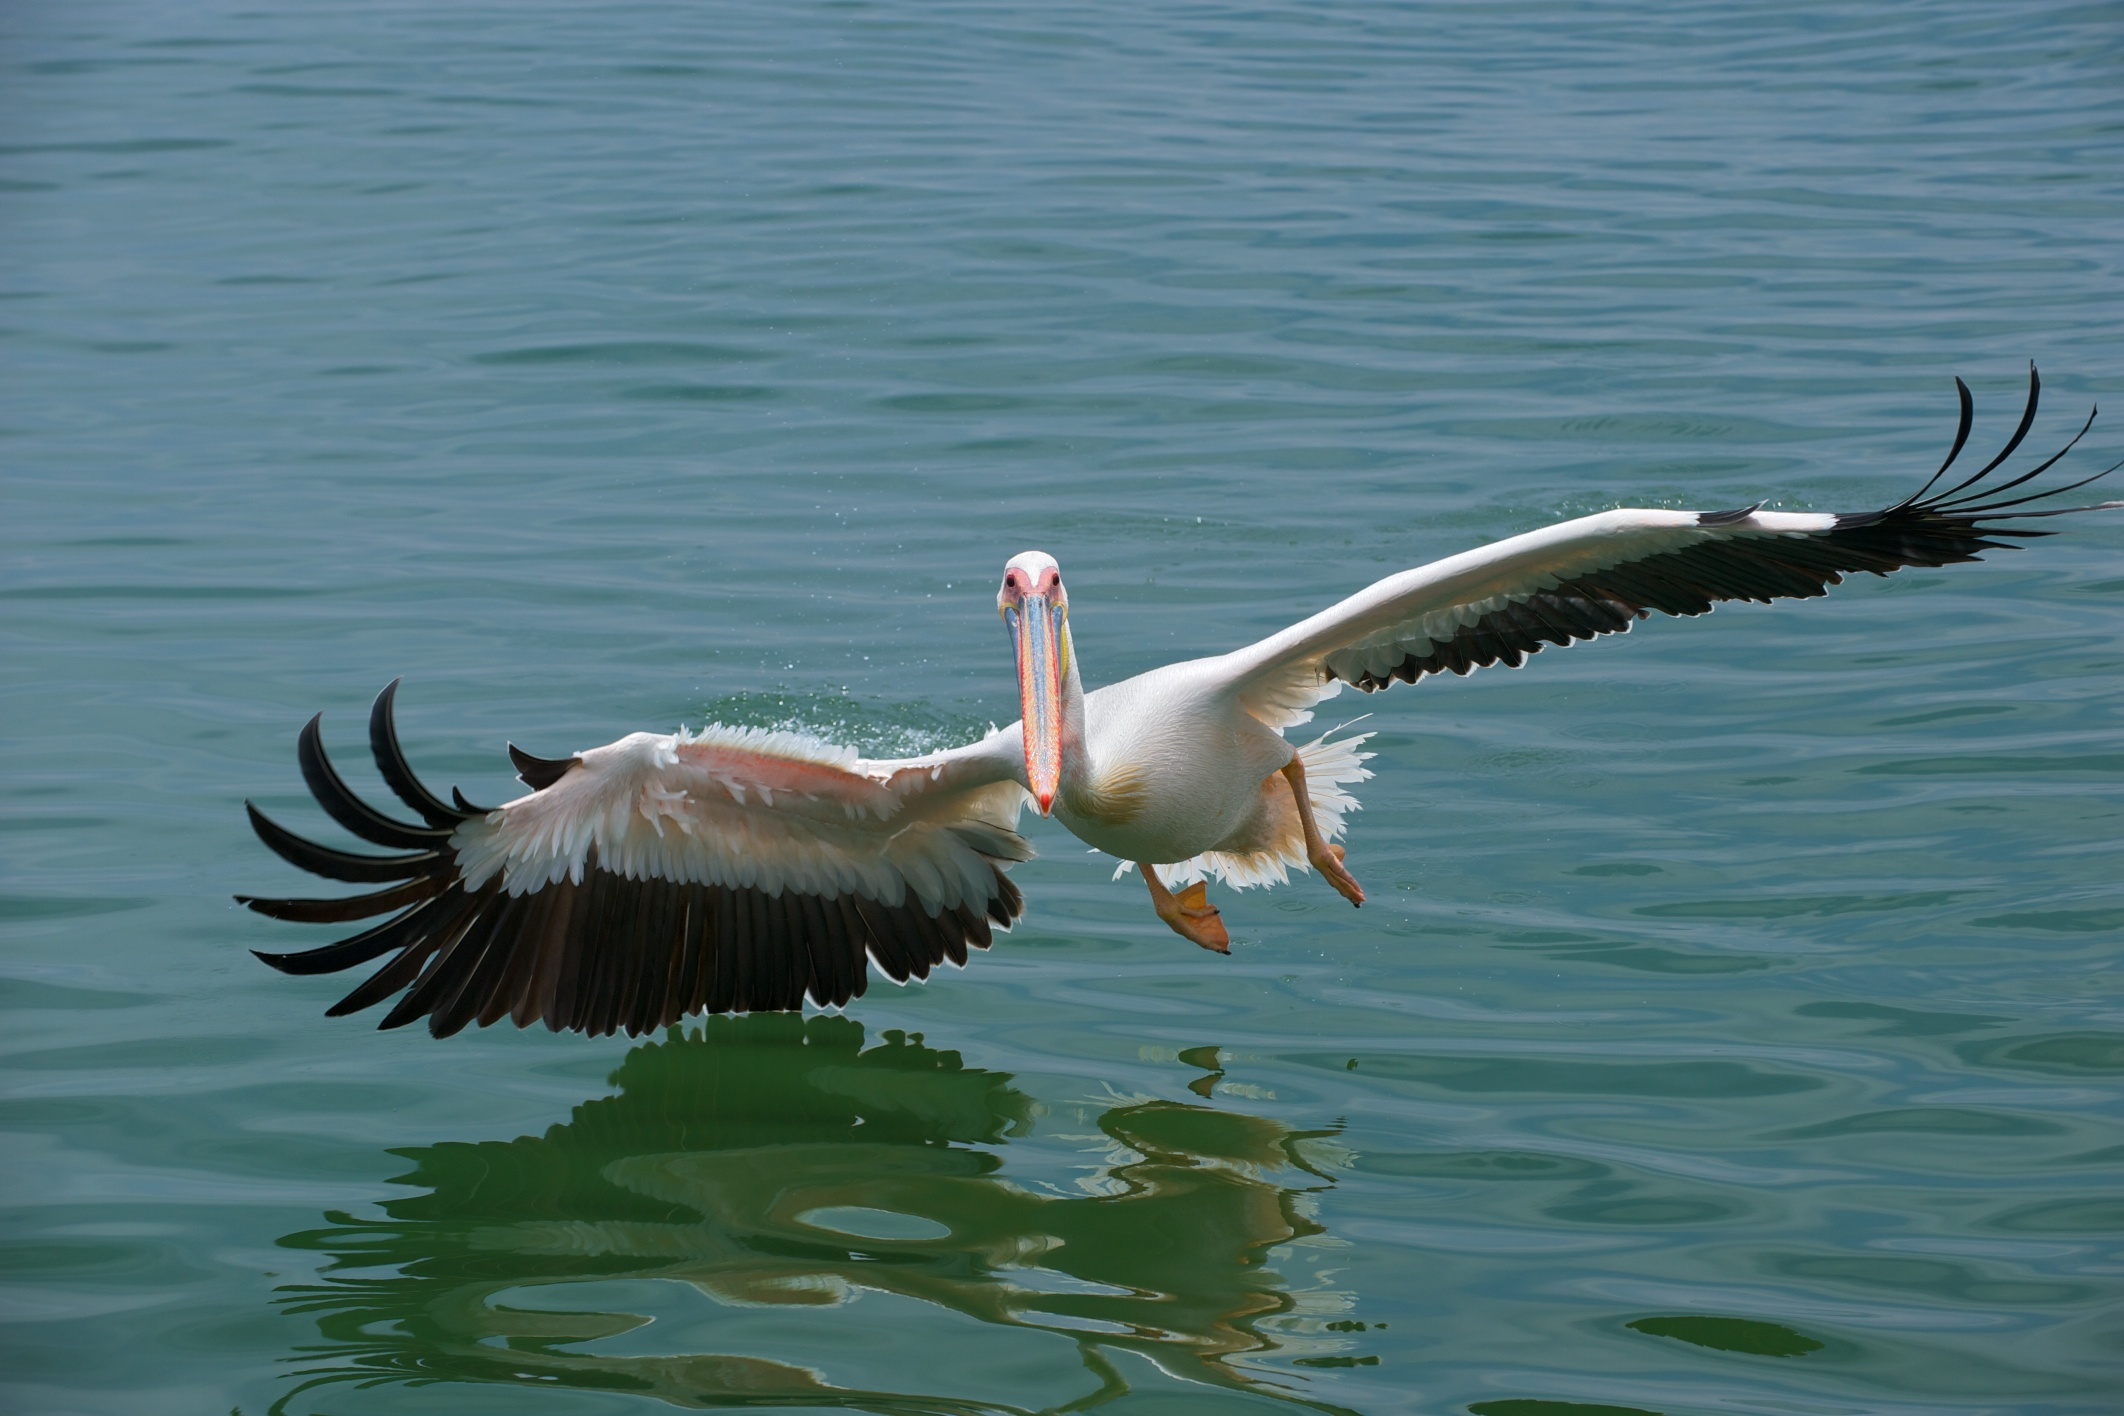 Great Whilte Pelican (Pelecanus onocrotalus) skimming the sea surface, in Namibia. Photo taken by Arturo de Frias Marques on December 17, 2009.